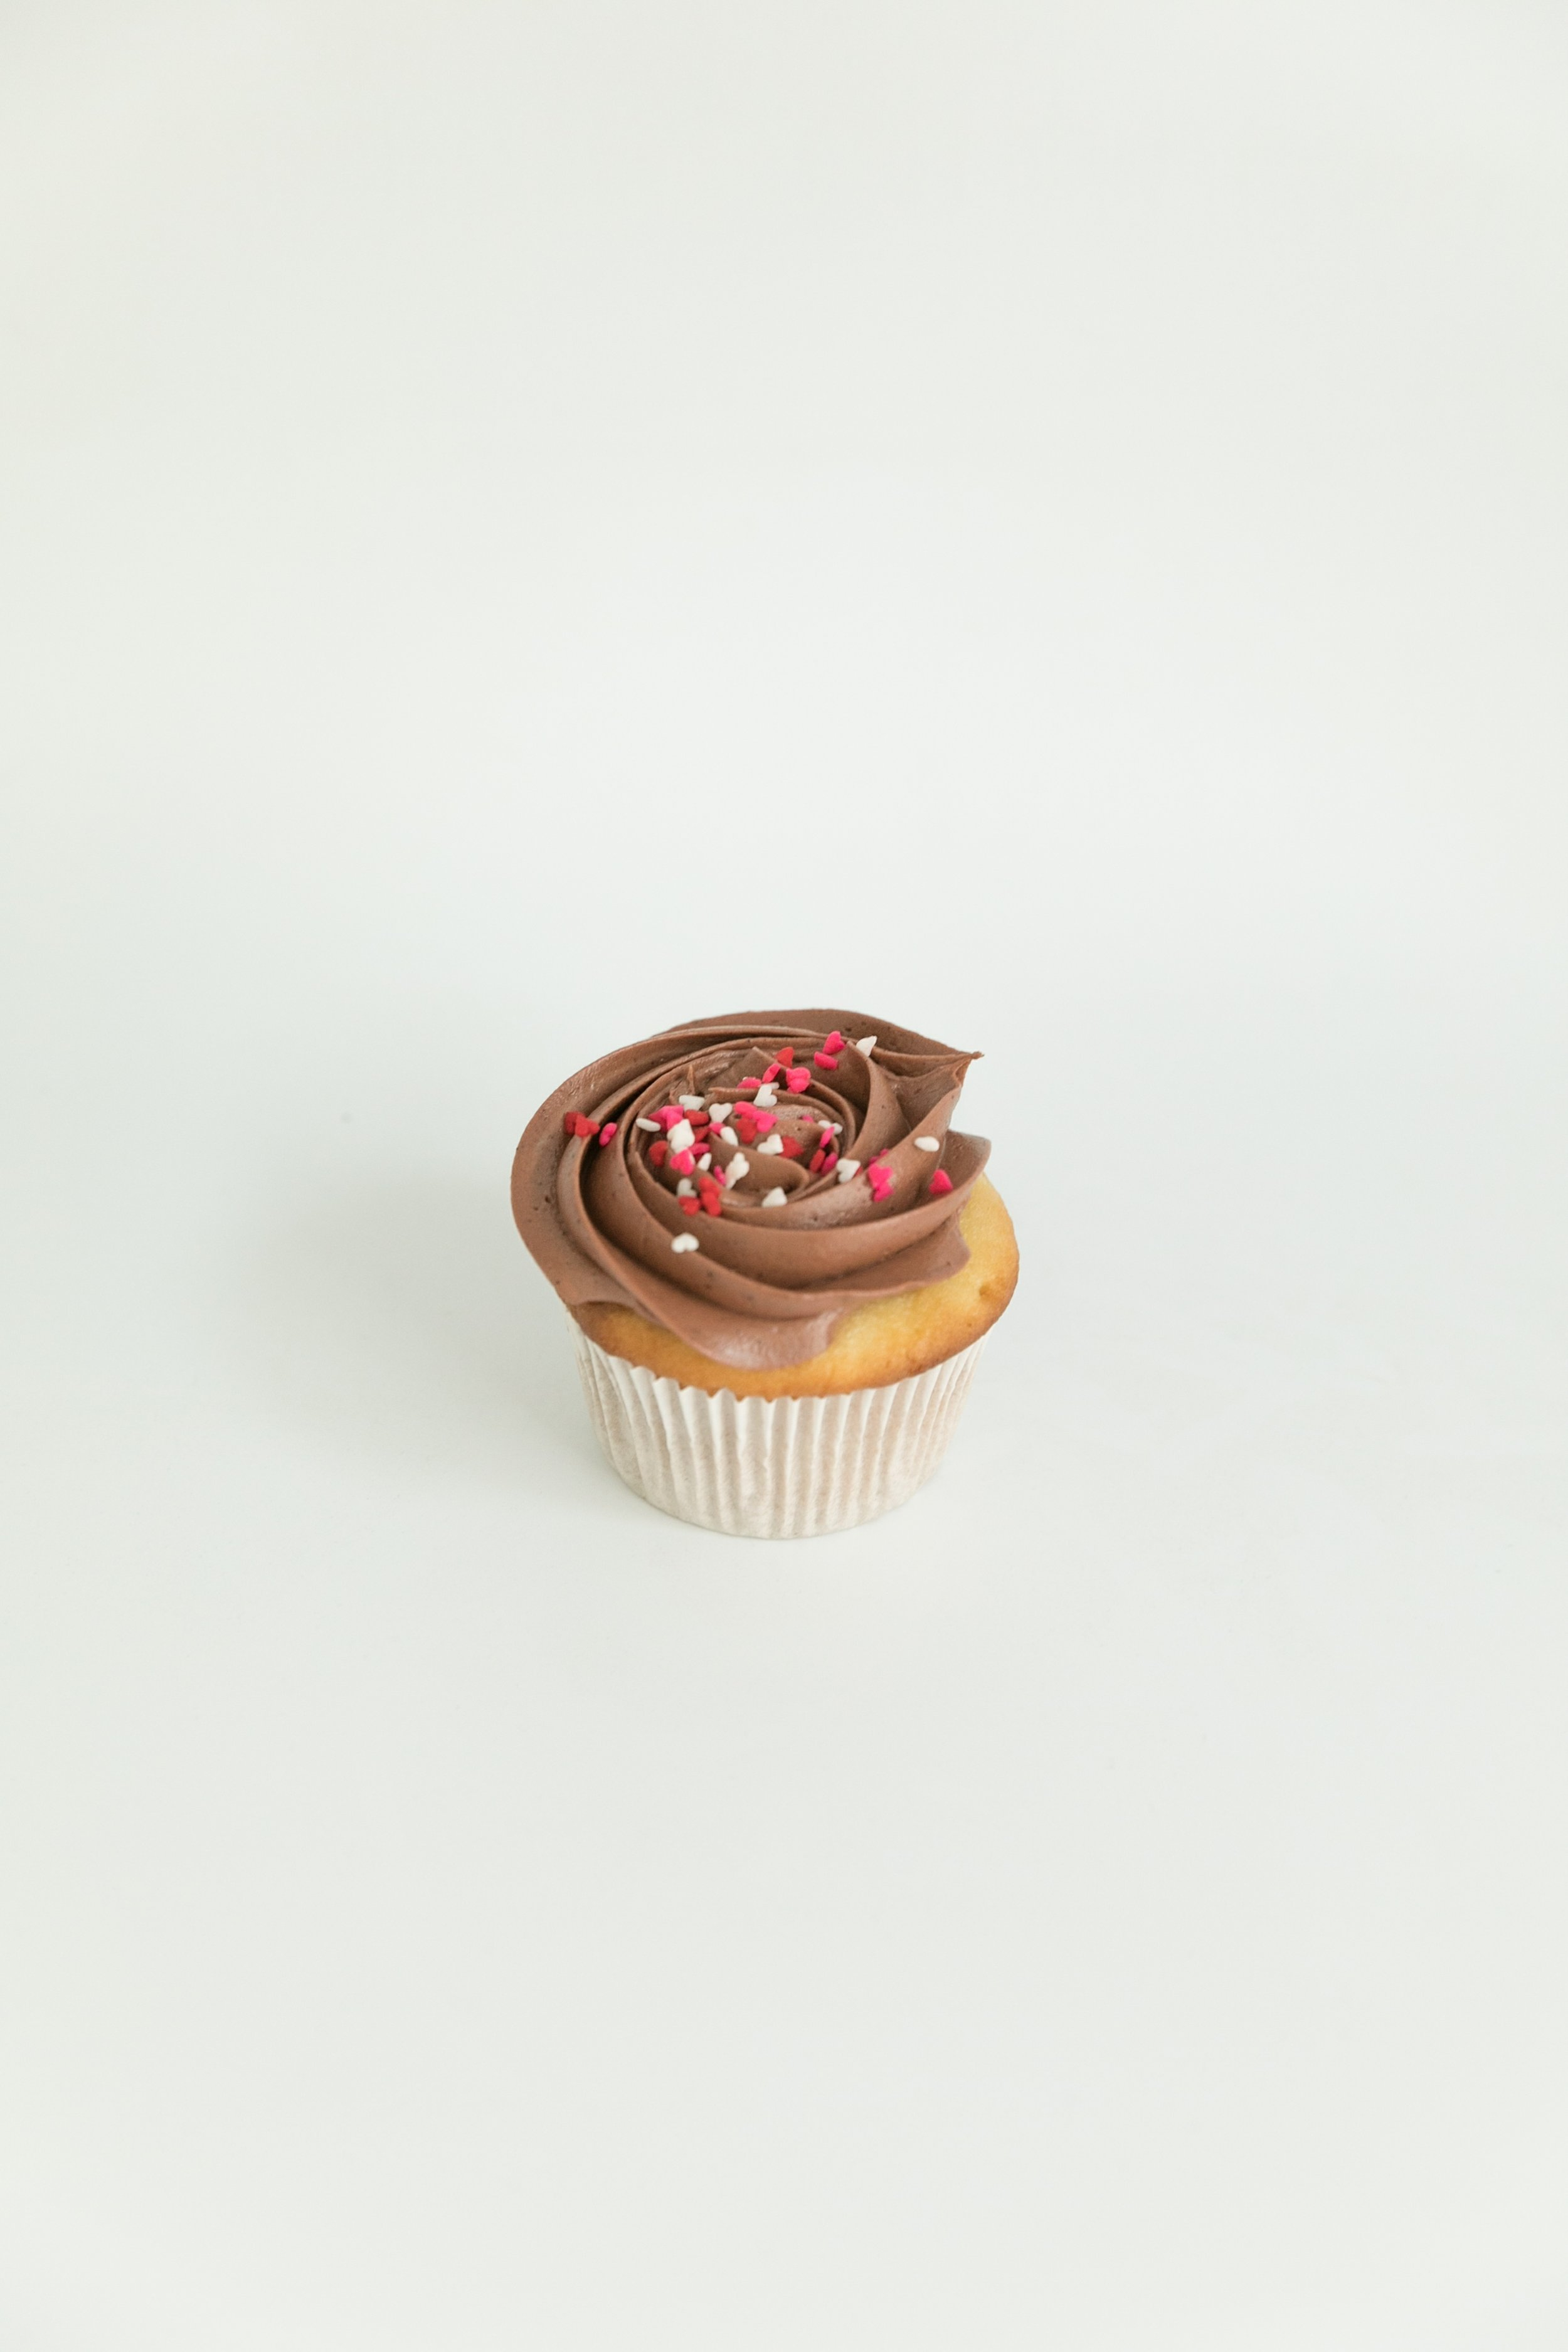 Vanilla cupcake with chocolate buttercream and heart sprinkles